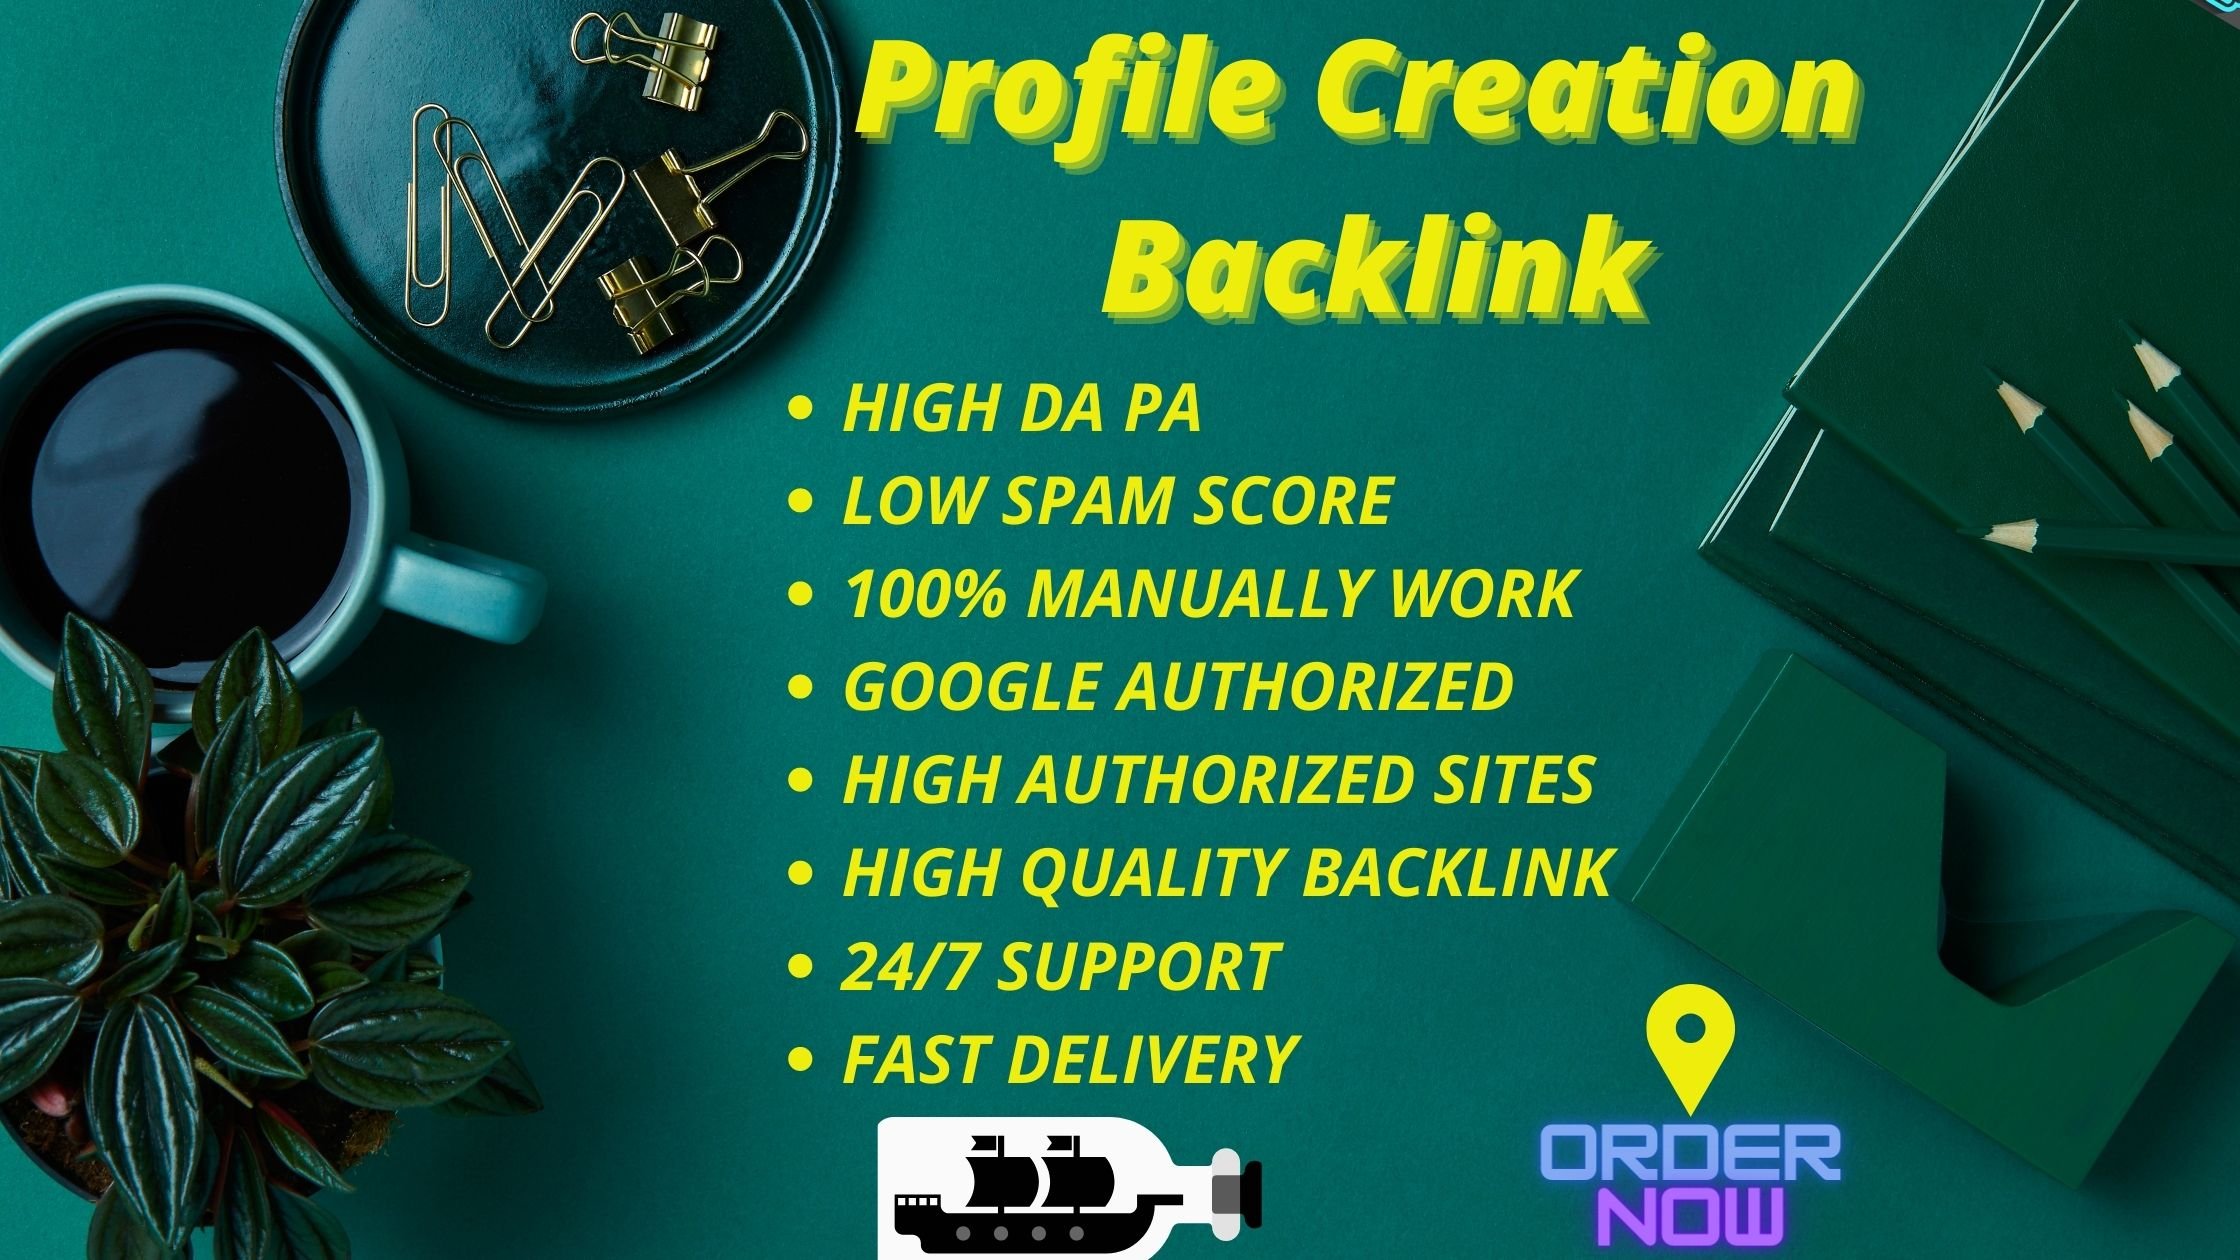 I will manually create 50 profile creation backlinks with high da pa.